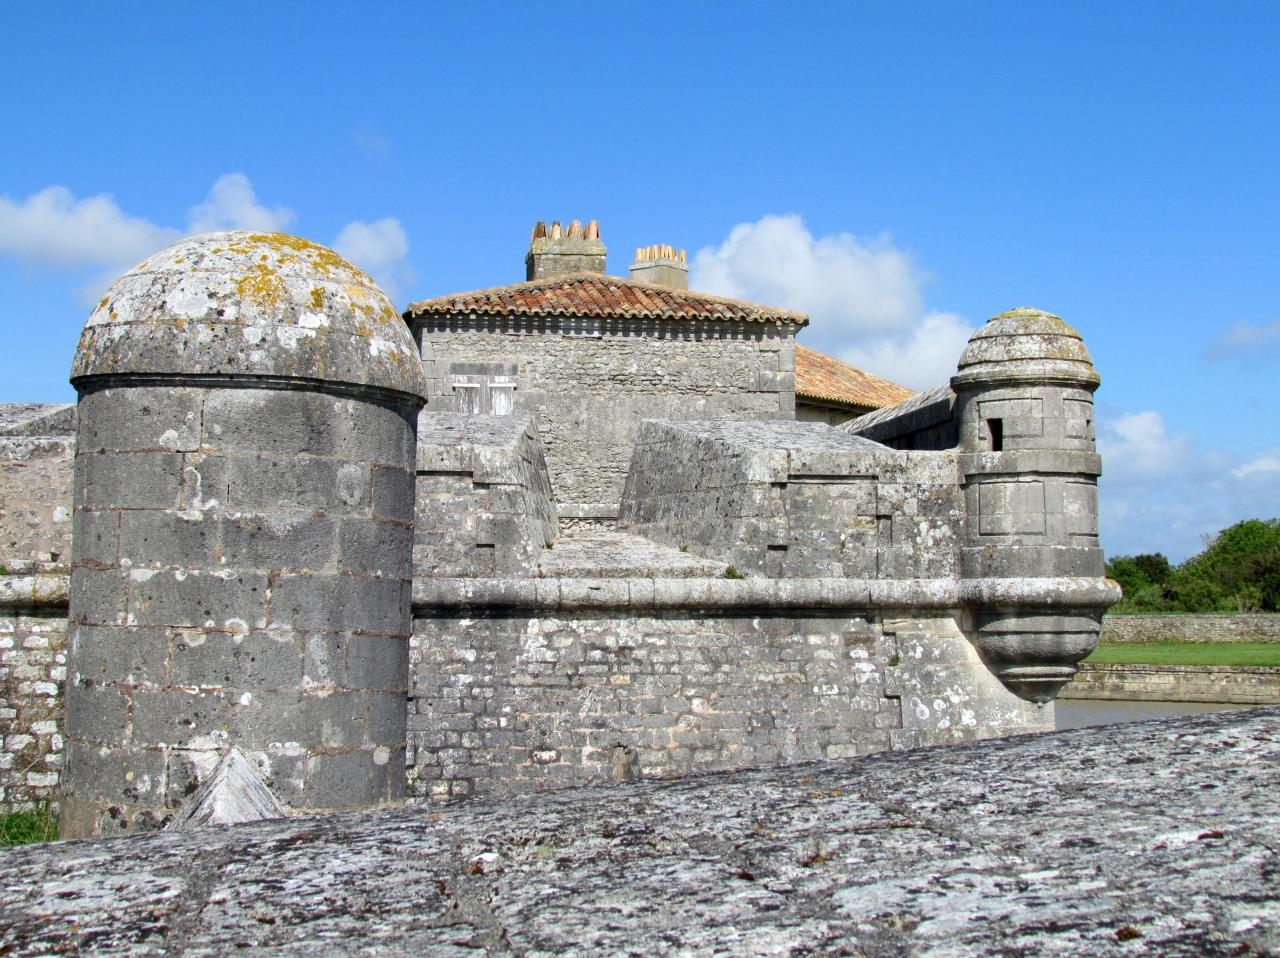 Fortification de Fort Lupin